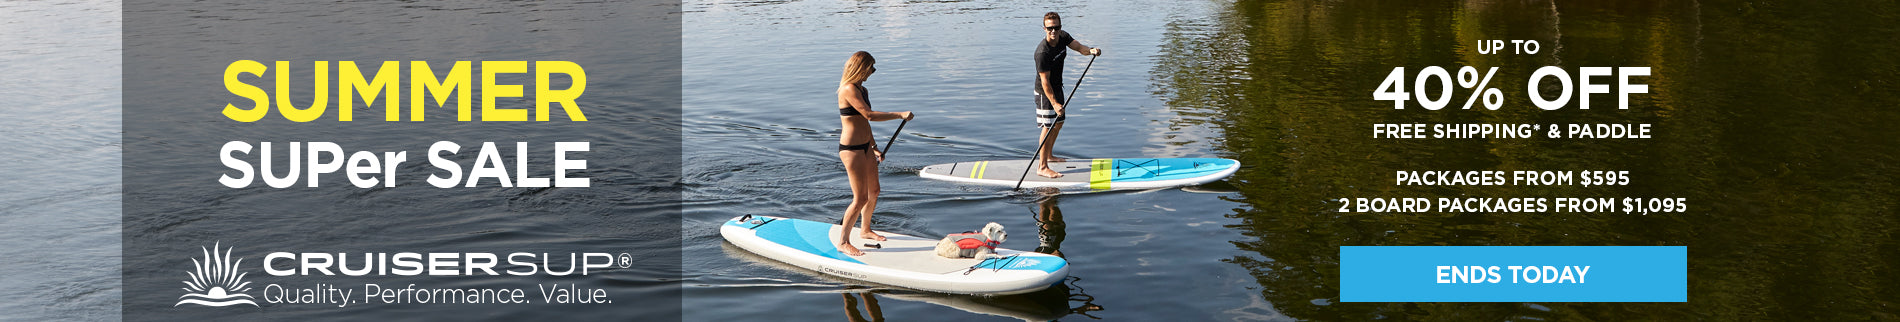 Stand Up Paddle Board SUPer Sale - Up to 40% Off Board Packages from $595